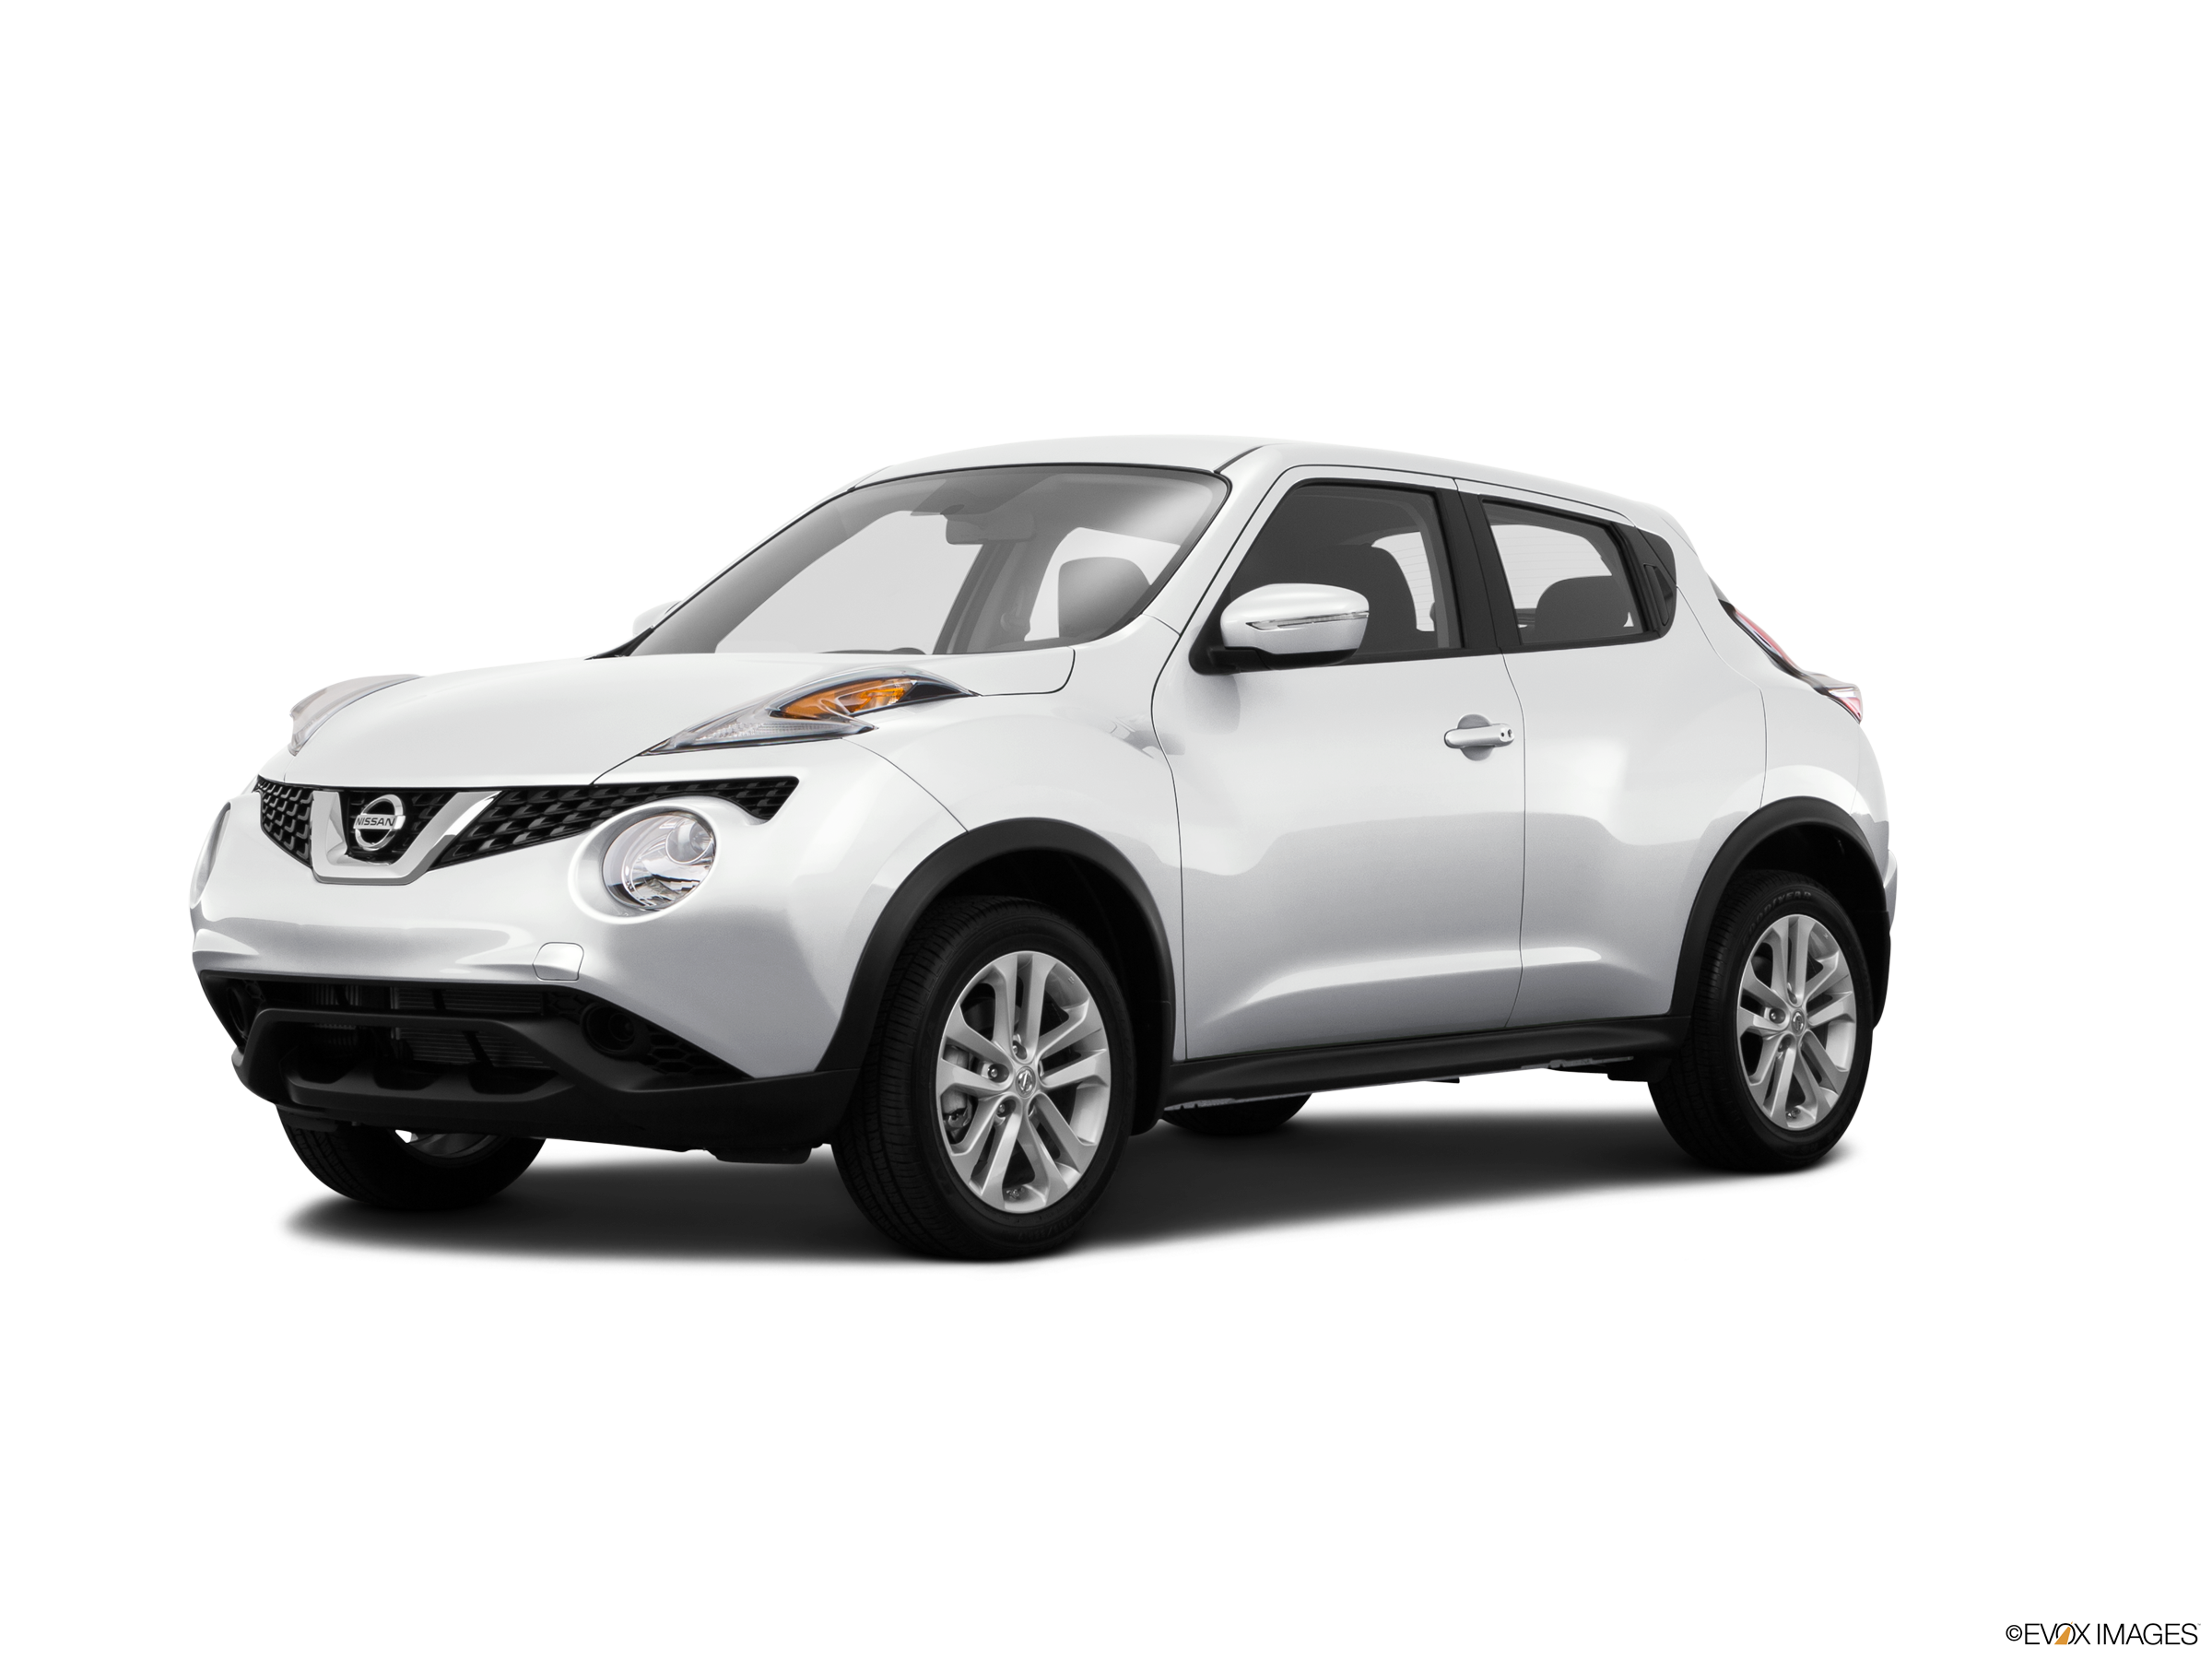 2015 Nissan Juke Values Cars For Sale Kelley Blue Book